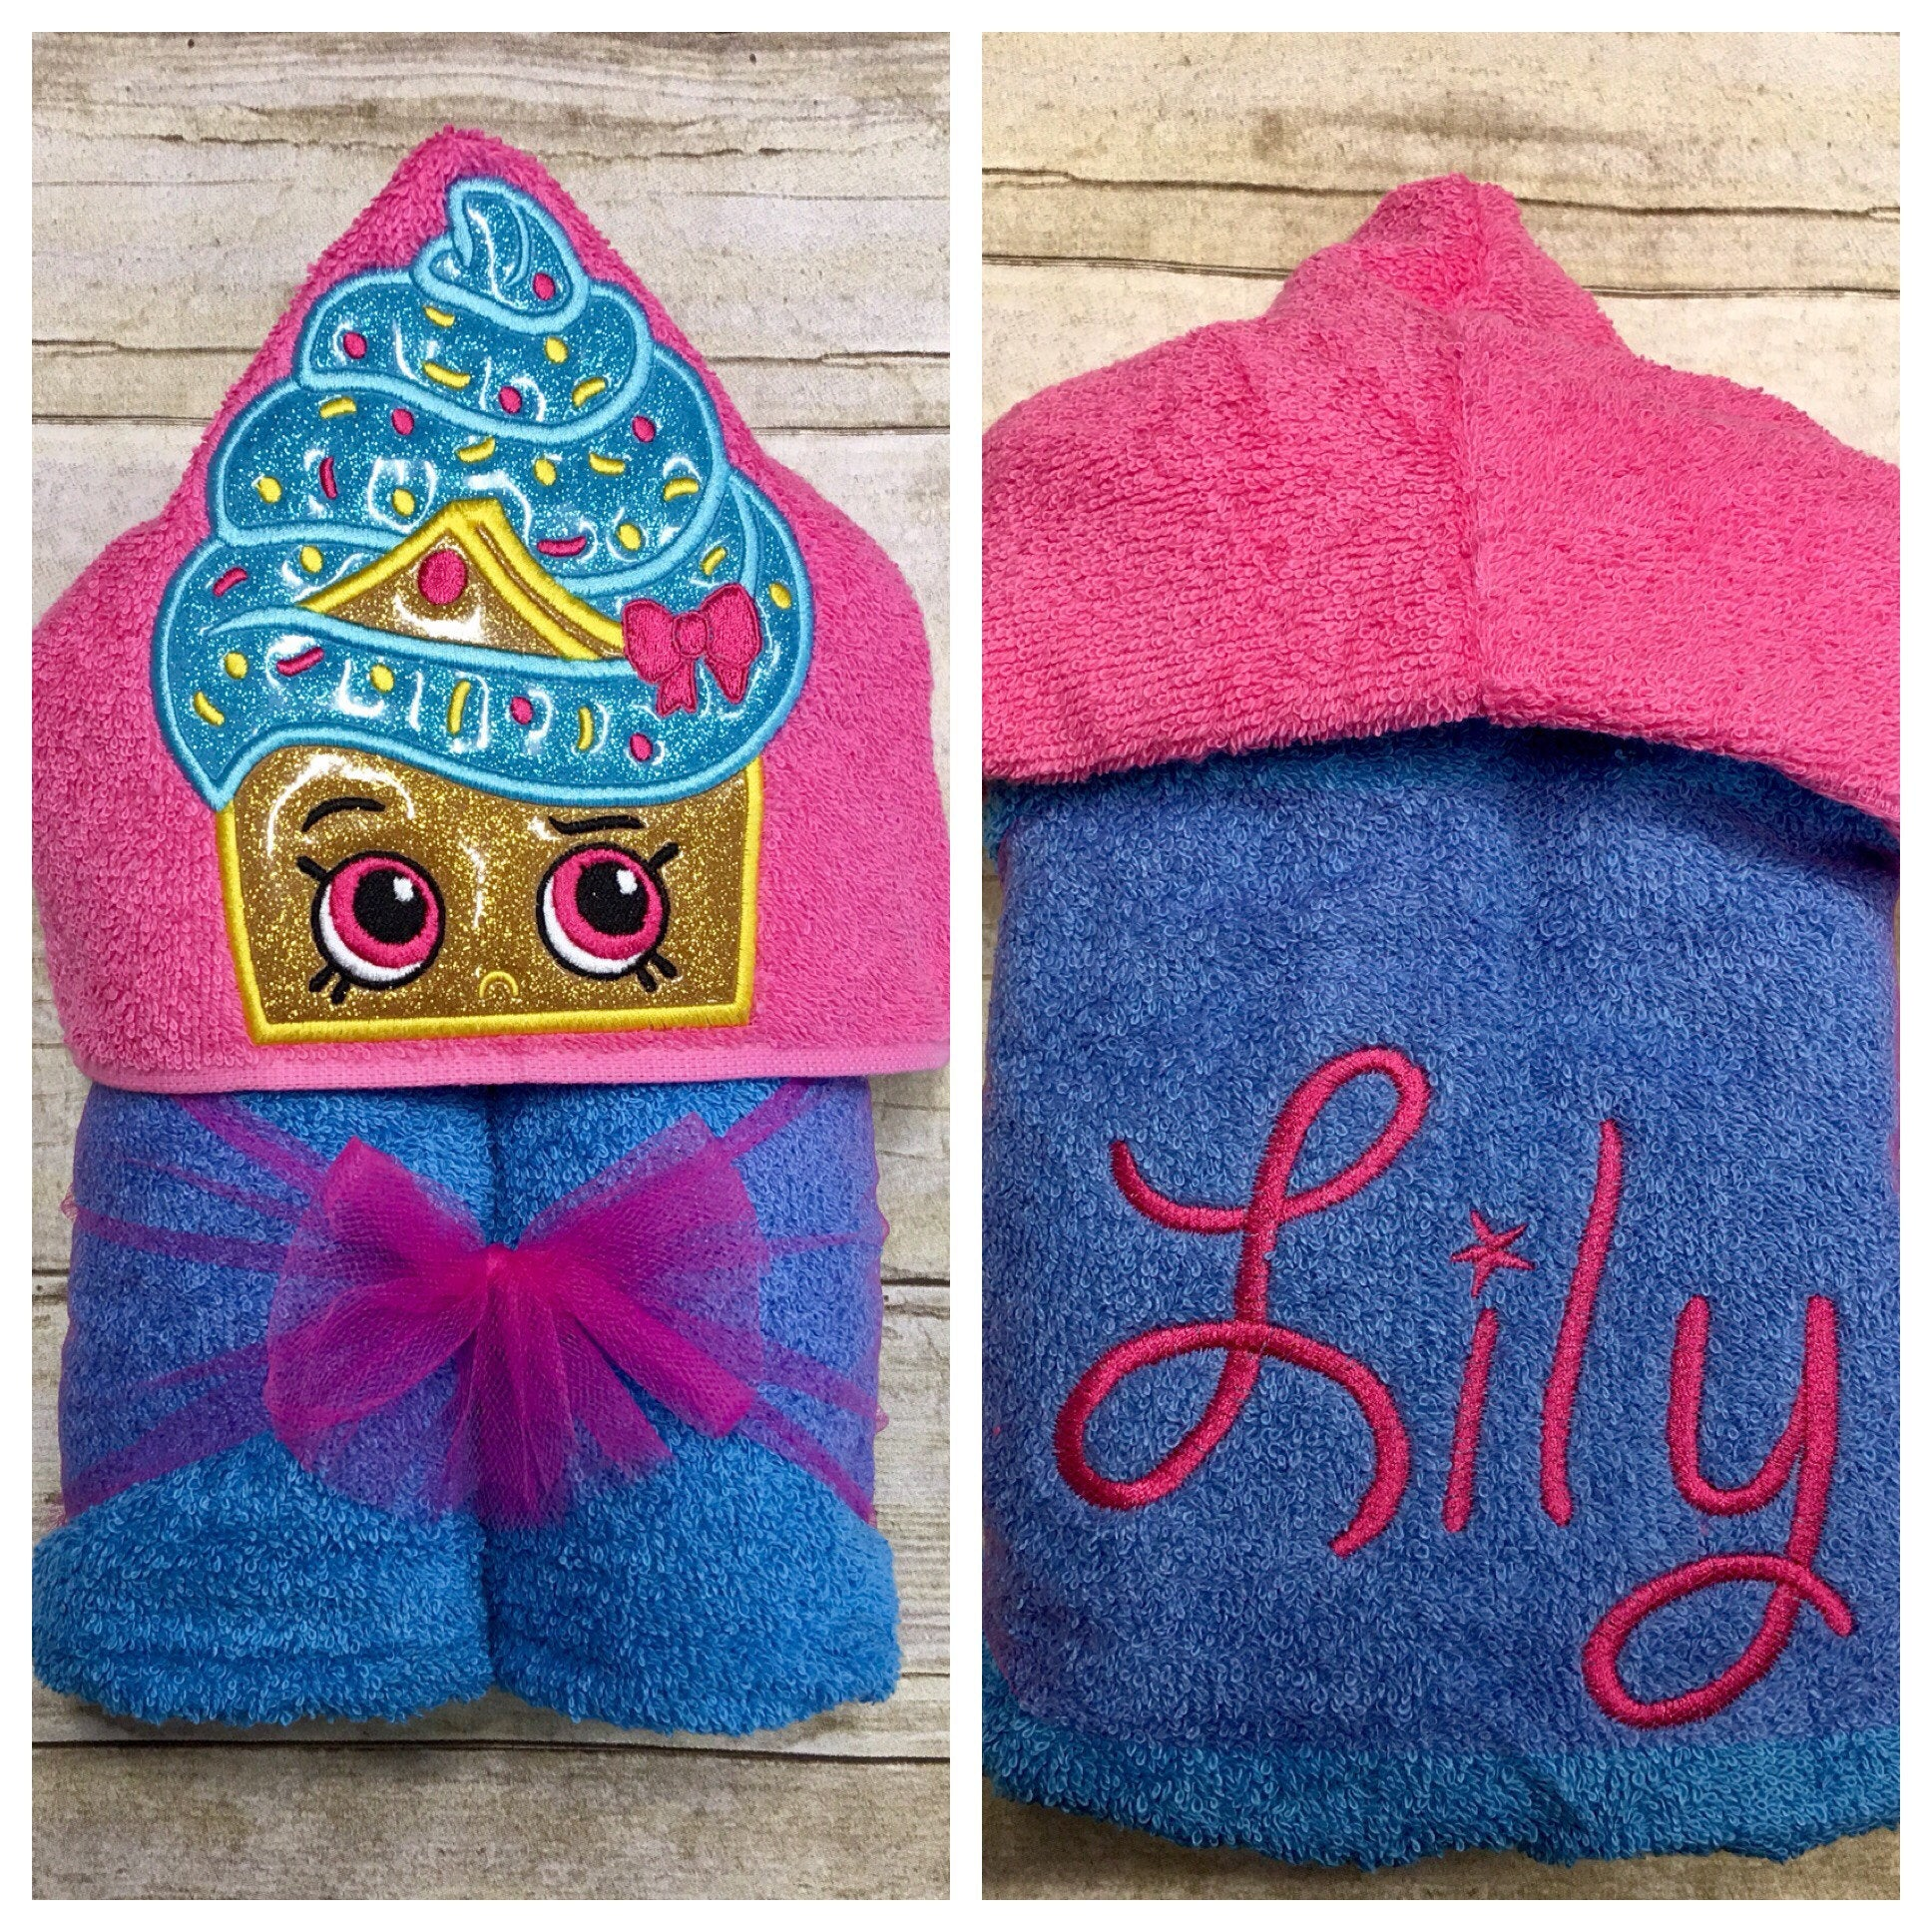 Cupcake Hooded Towel